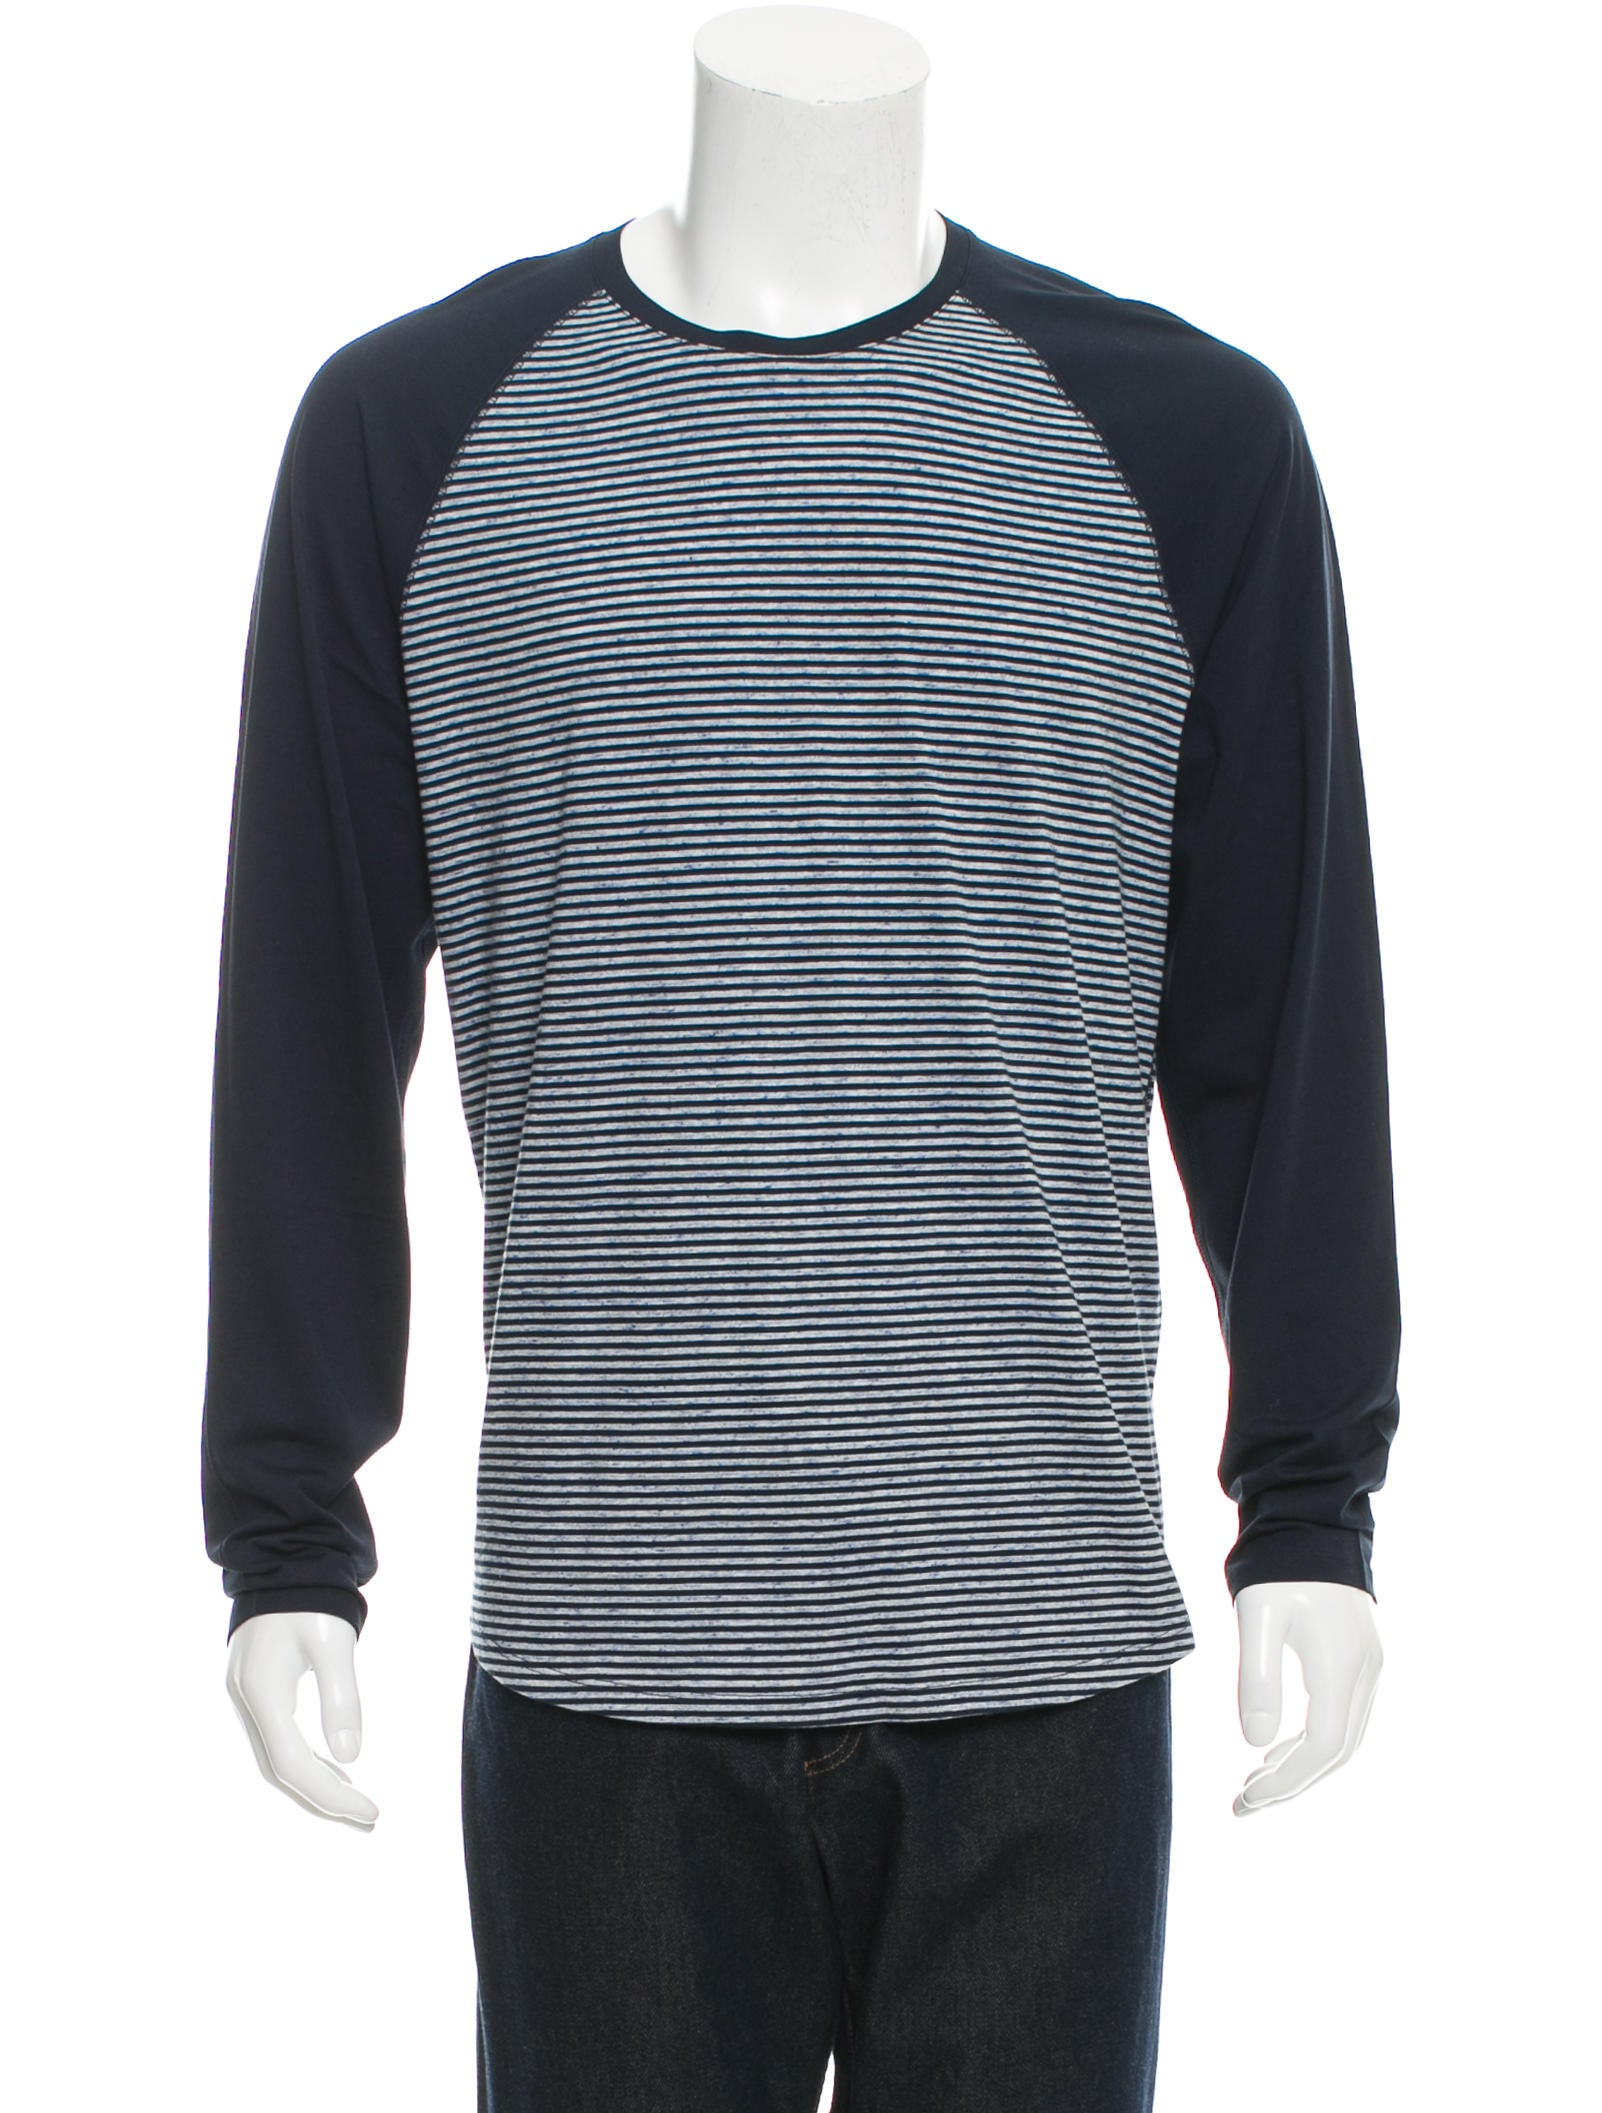 Vince striped scoop neck t shirt w tags clothing for Scoop neck t shirt